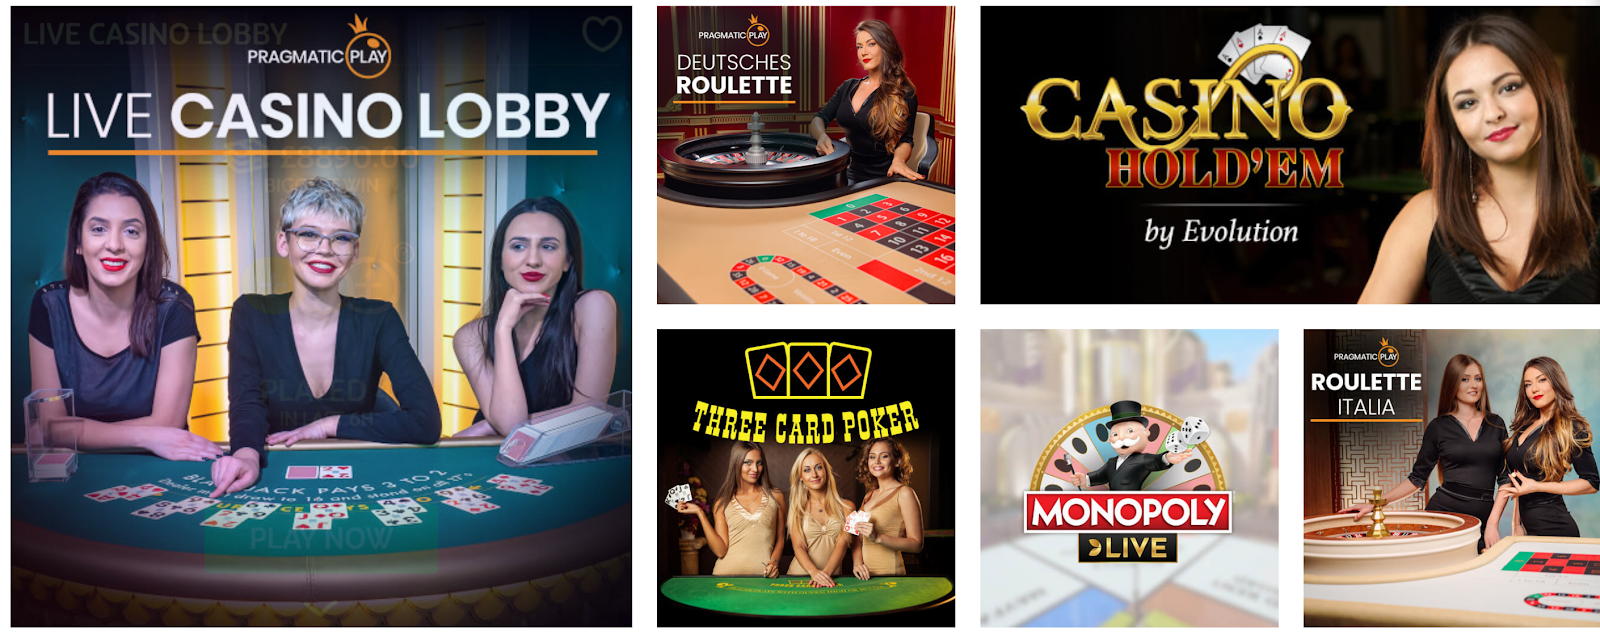 PlayOJO is an excellent site for live poker games